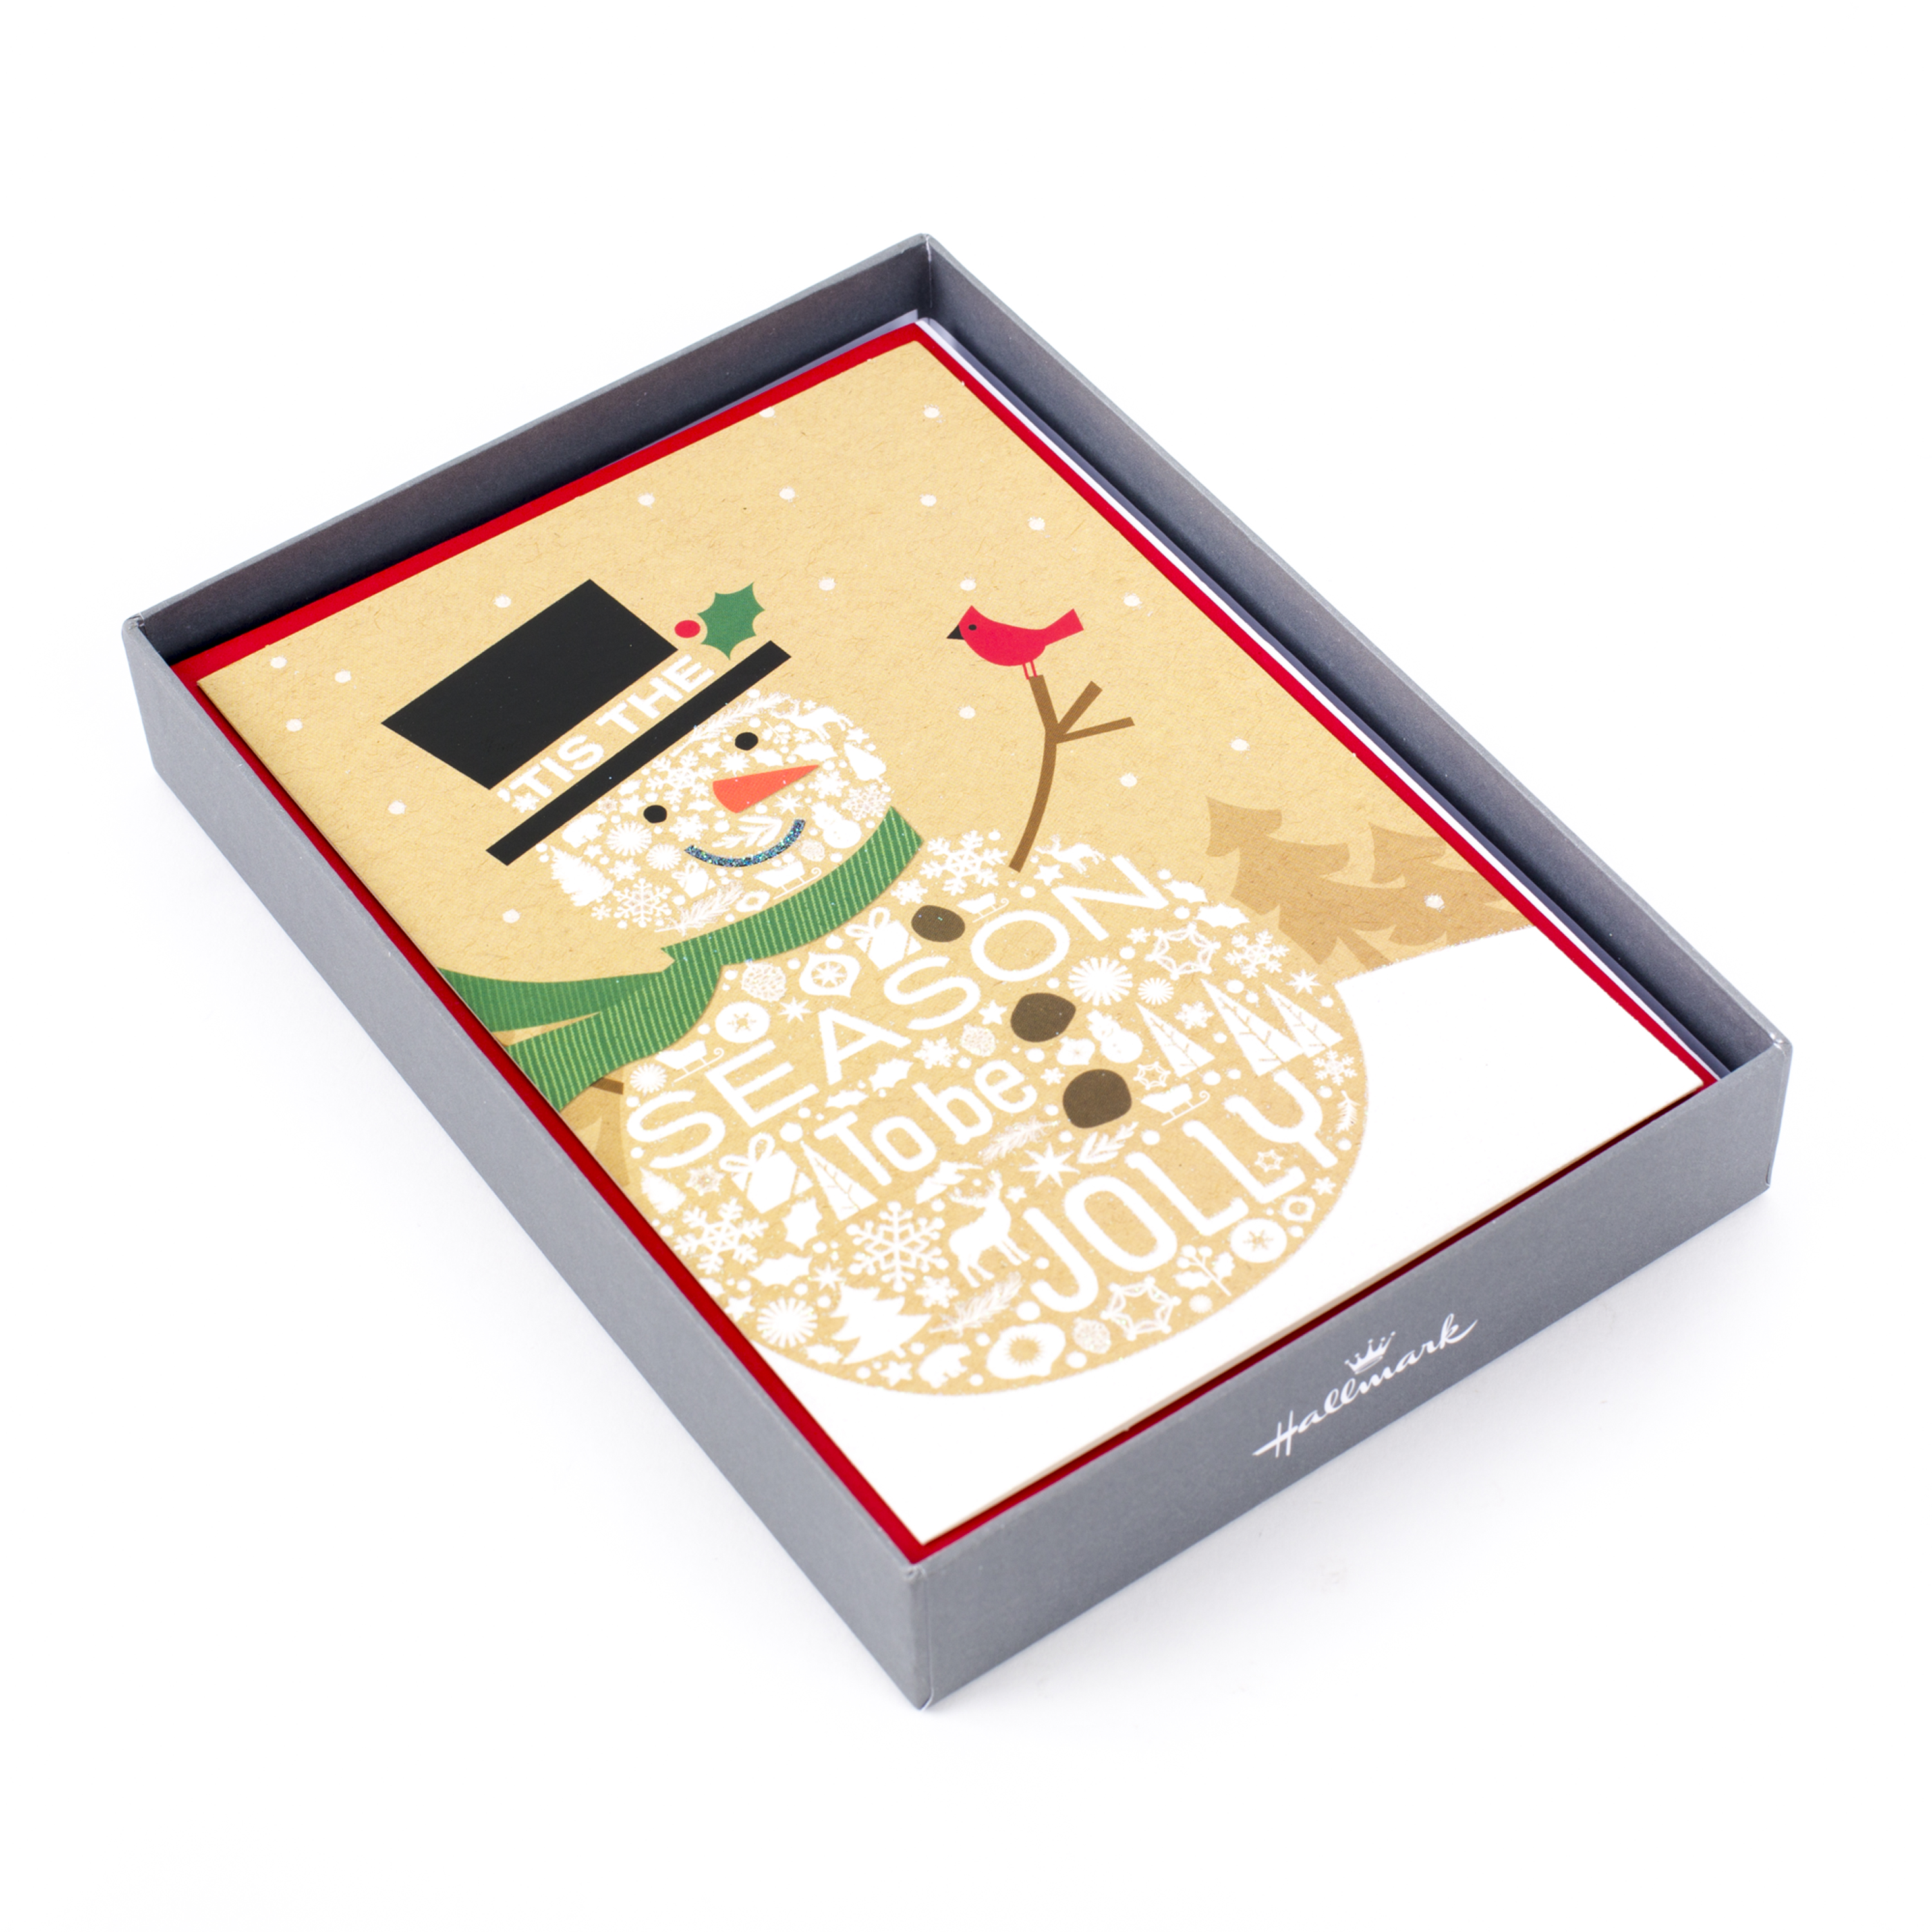 Hallmark Holiday Boxed Cards, Jolly Snowman (16 Cards and 17 Envelopes)